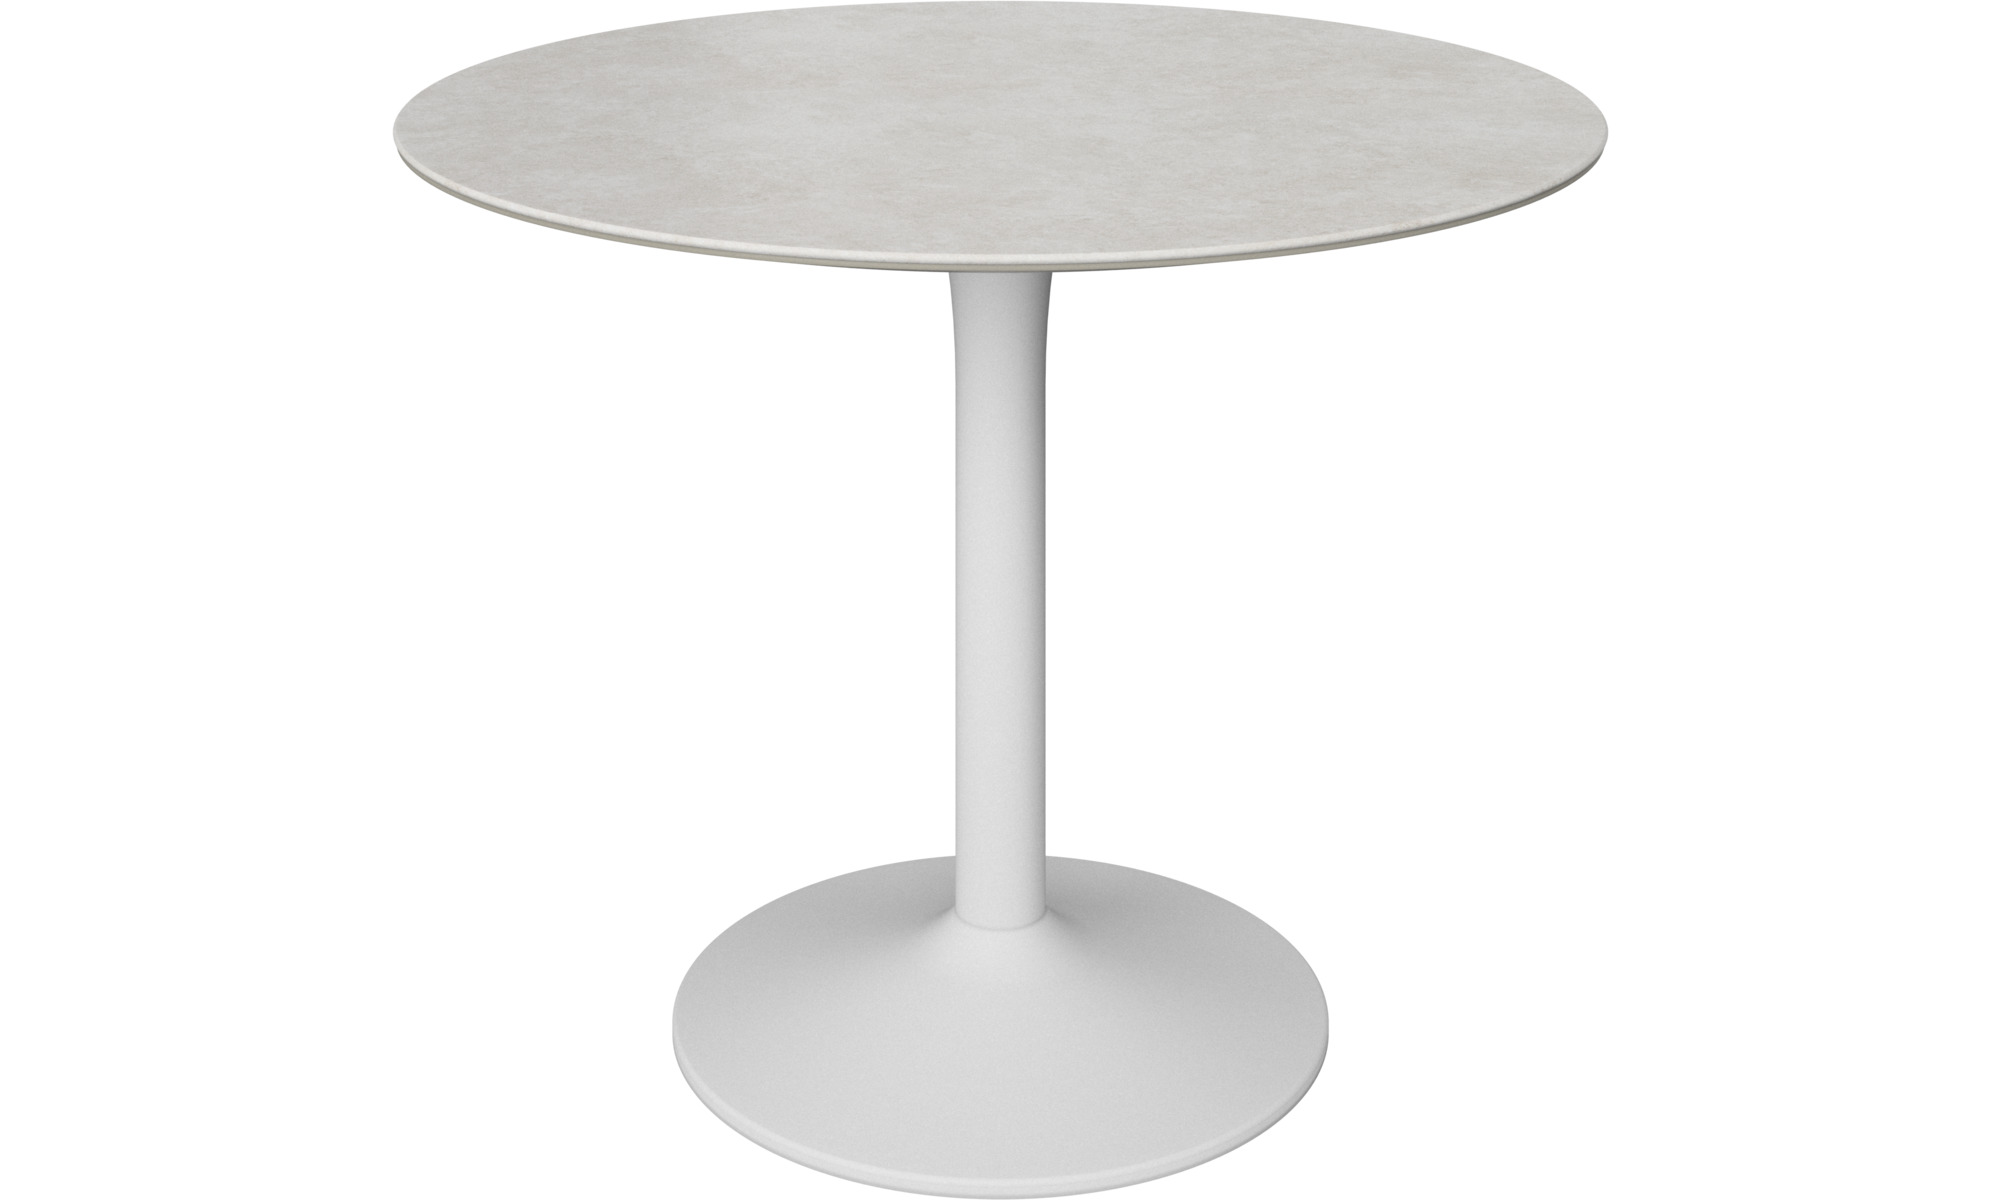 Dining tables - New York table - round - Grey - Ceramic